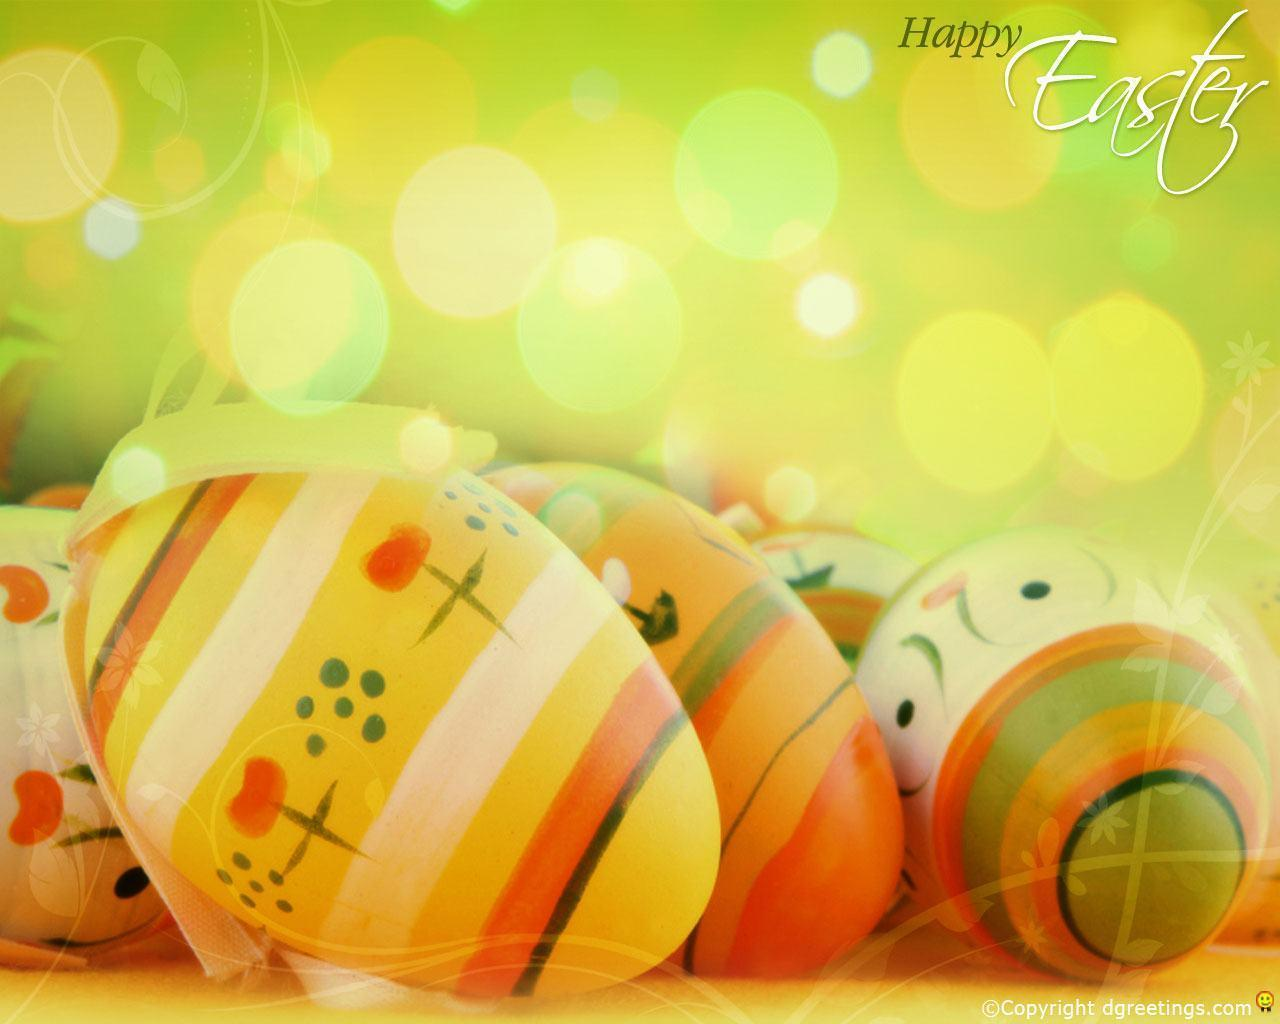 Easter Wallpaper Backgrounds 1280x1024